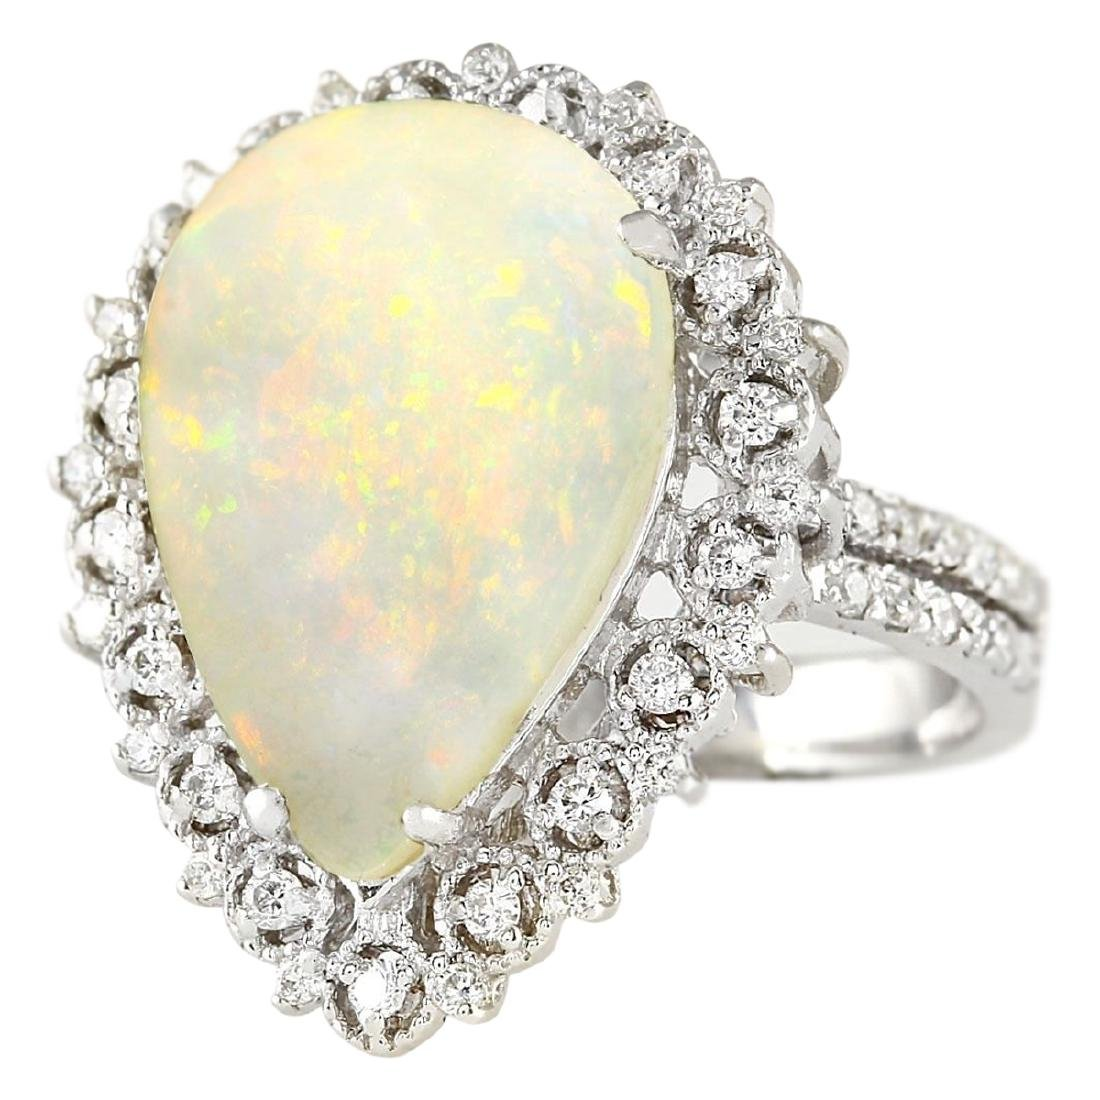 4.93 CTW Natural Opal And Diamond Ring In18K White Gold - 2